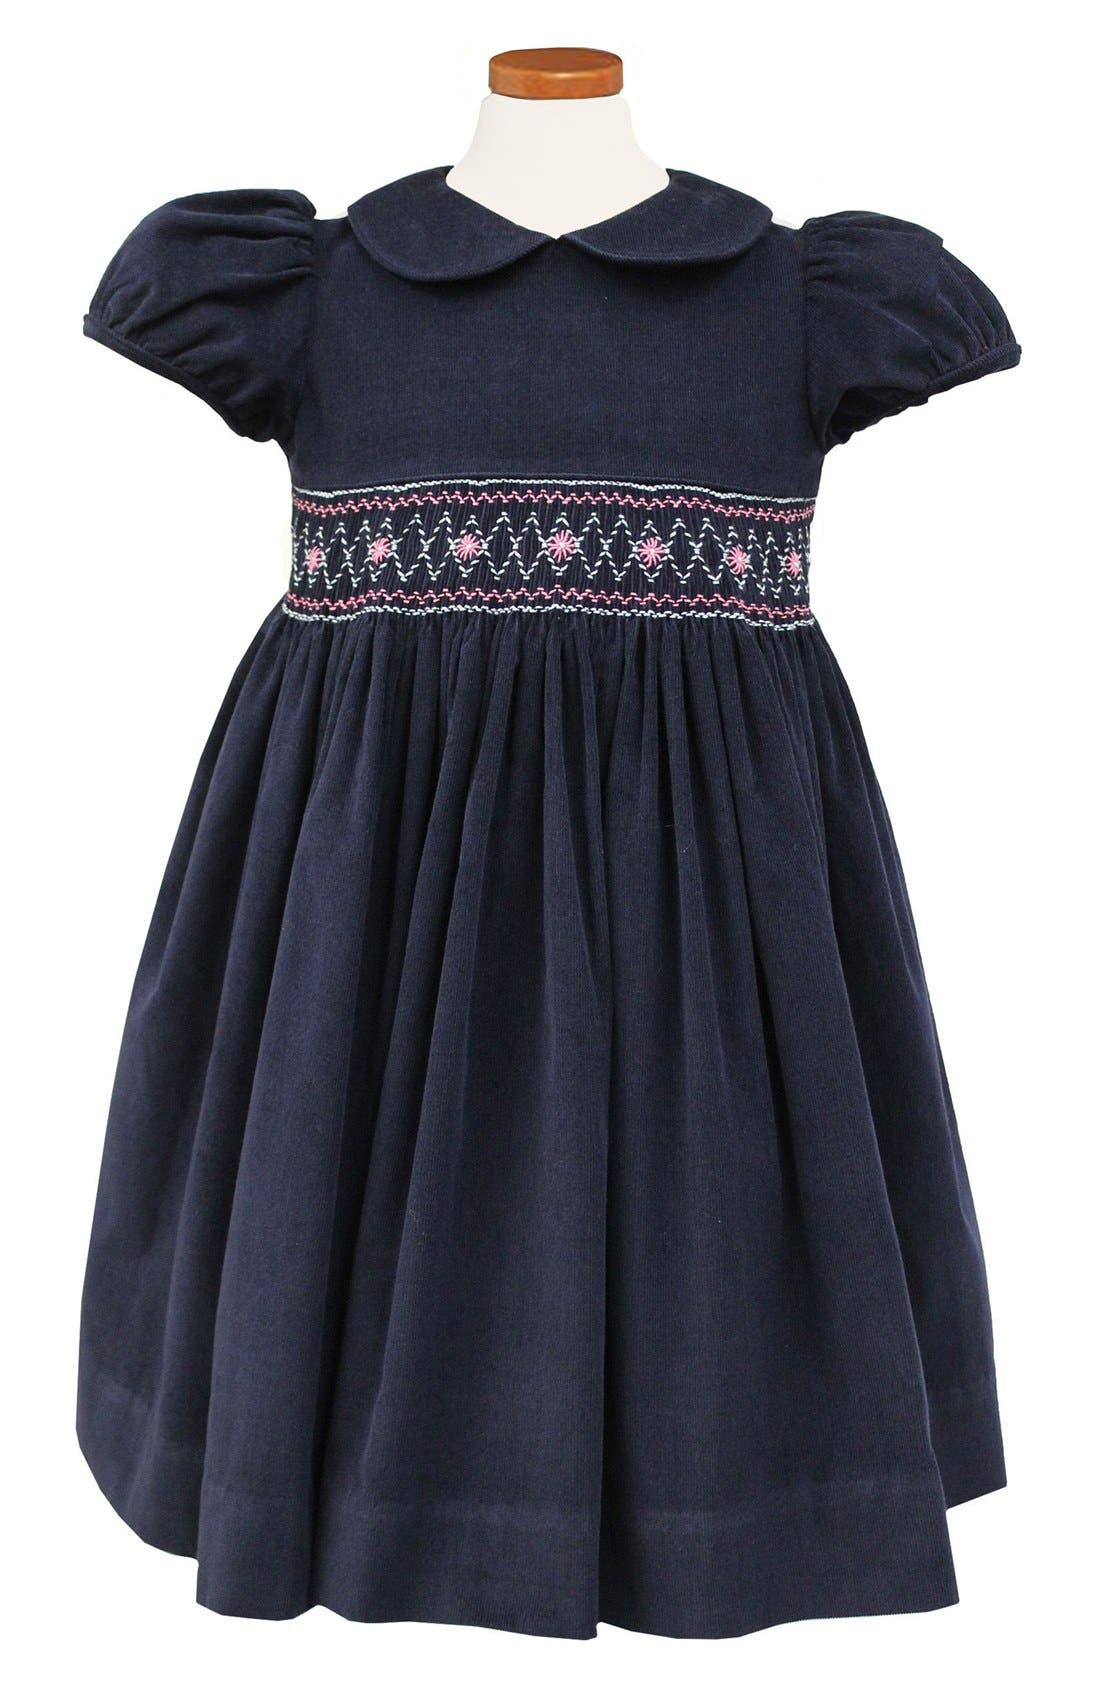 Embroidered Smocked Waist Dress,                         Main,                         color, Navy